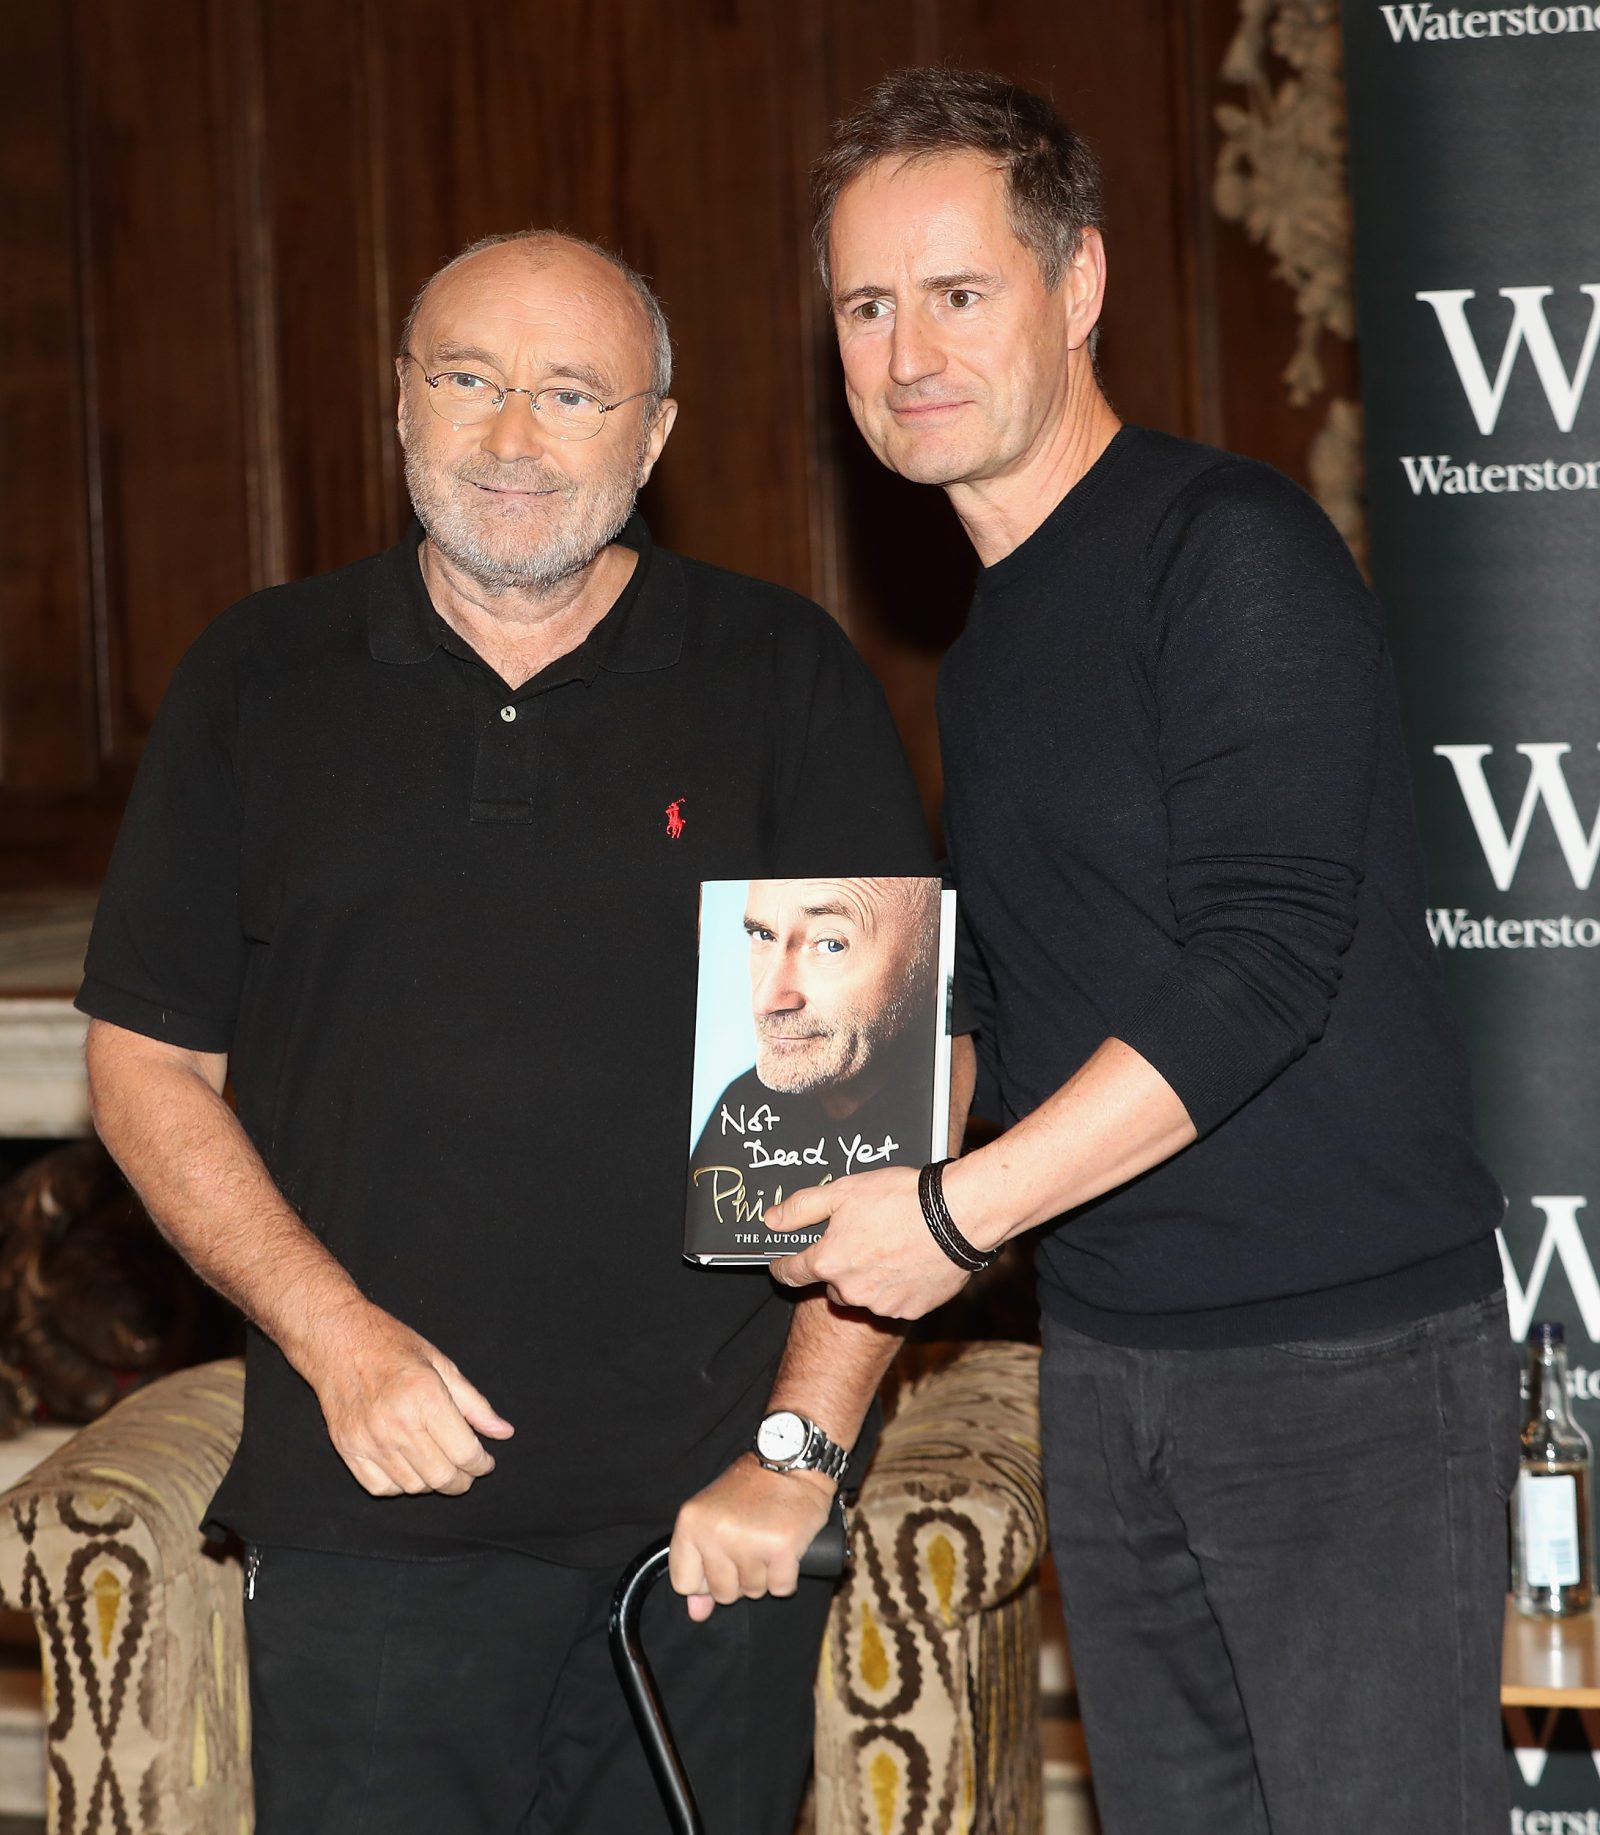 To celebrate the launch of his autobiography Not Dead Yet, Phil Collins poses with Magic FMs Richard ahead of a talk at in London.  (Photo by Chris Jackson/Getty Images)